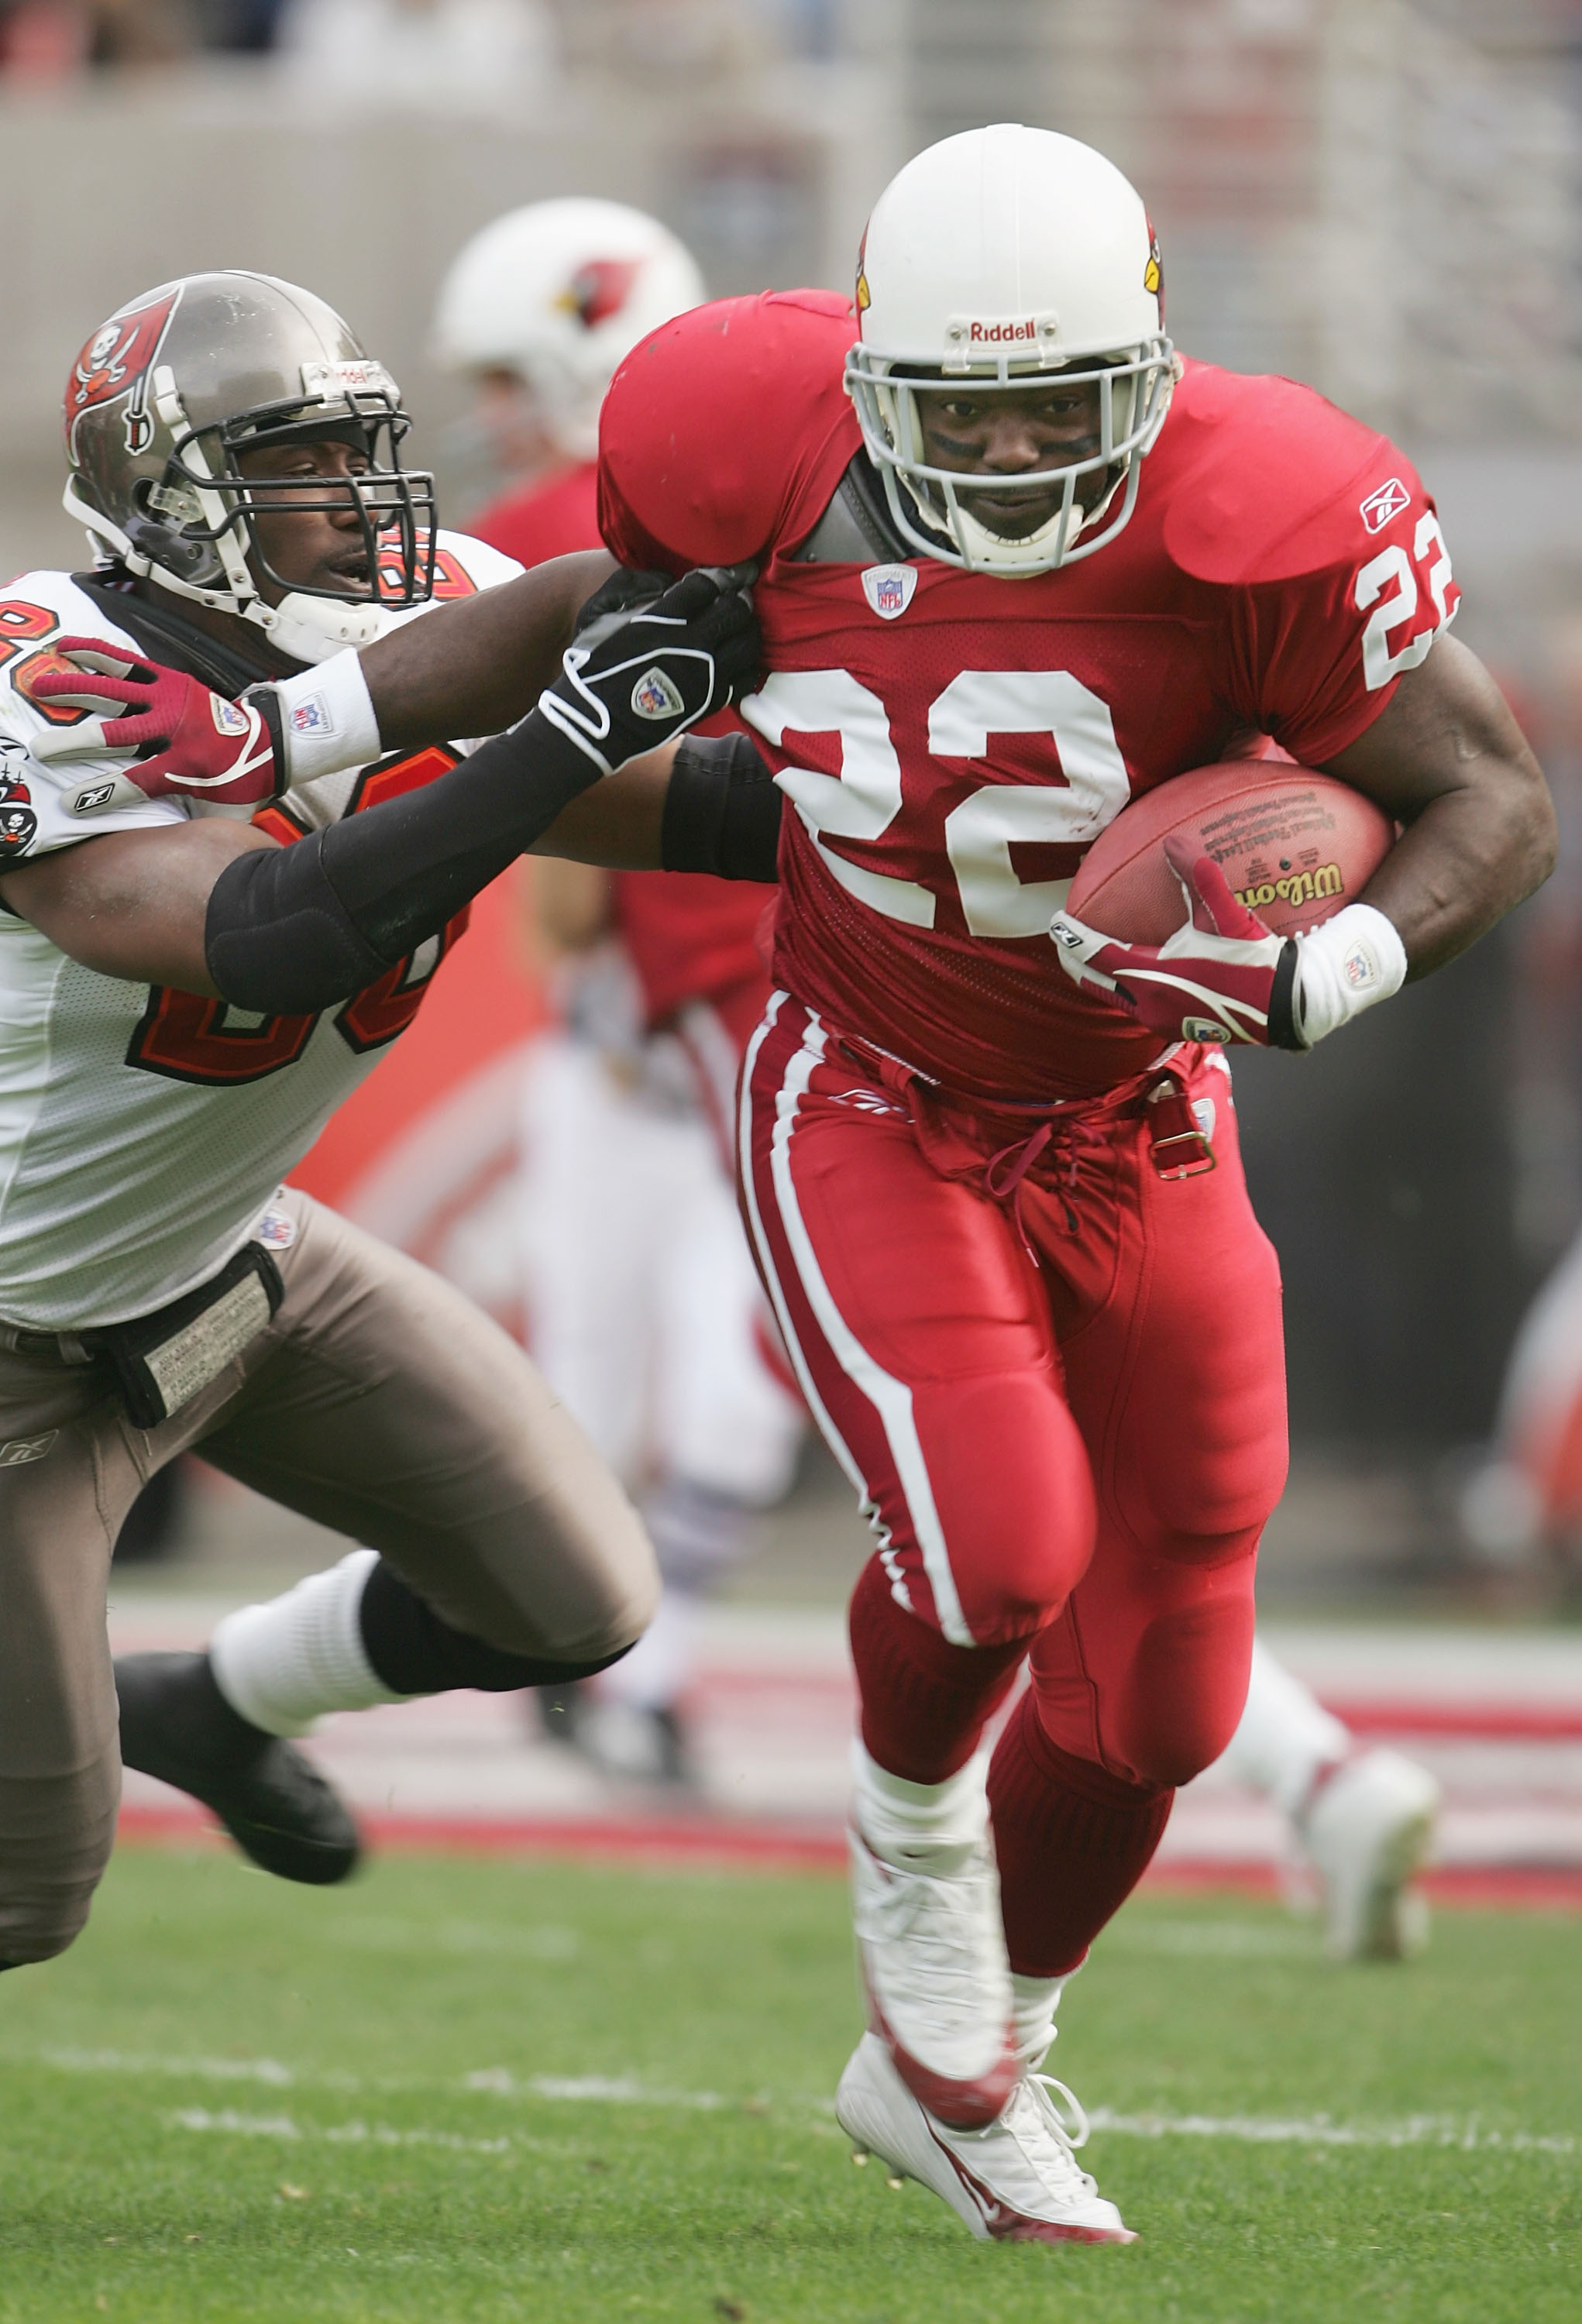 TEMPE, AZ - JANUARY 2:  Runningback Emmitt Smith #22 of the Arizona Cardinals carries the ball under pressure from Dexter Jackson #28 of the Tampa Bay Buccaneers at Sun Devil Stadium on January 2, 2005 in Tempe, Arizona. The Cardinals defeated the Buccane